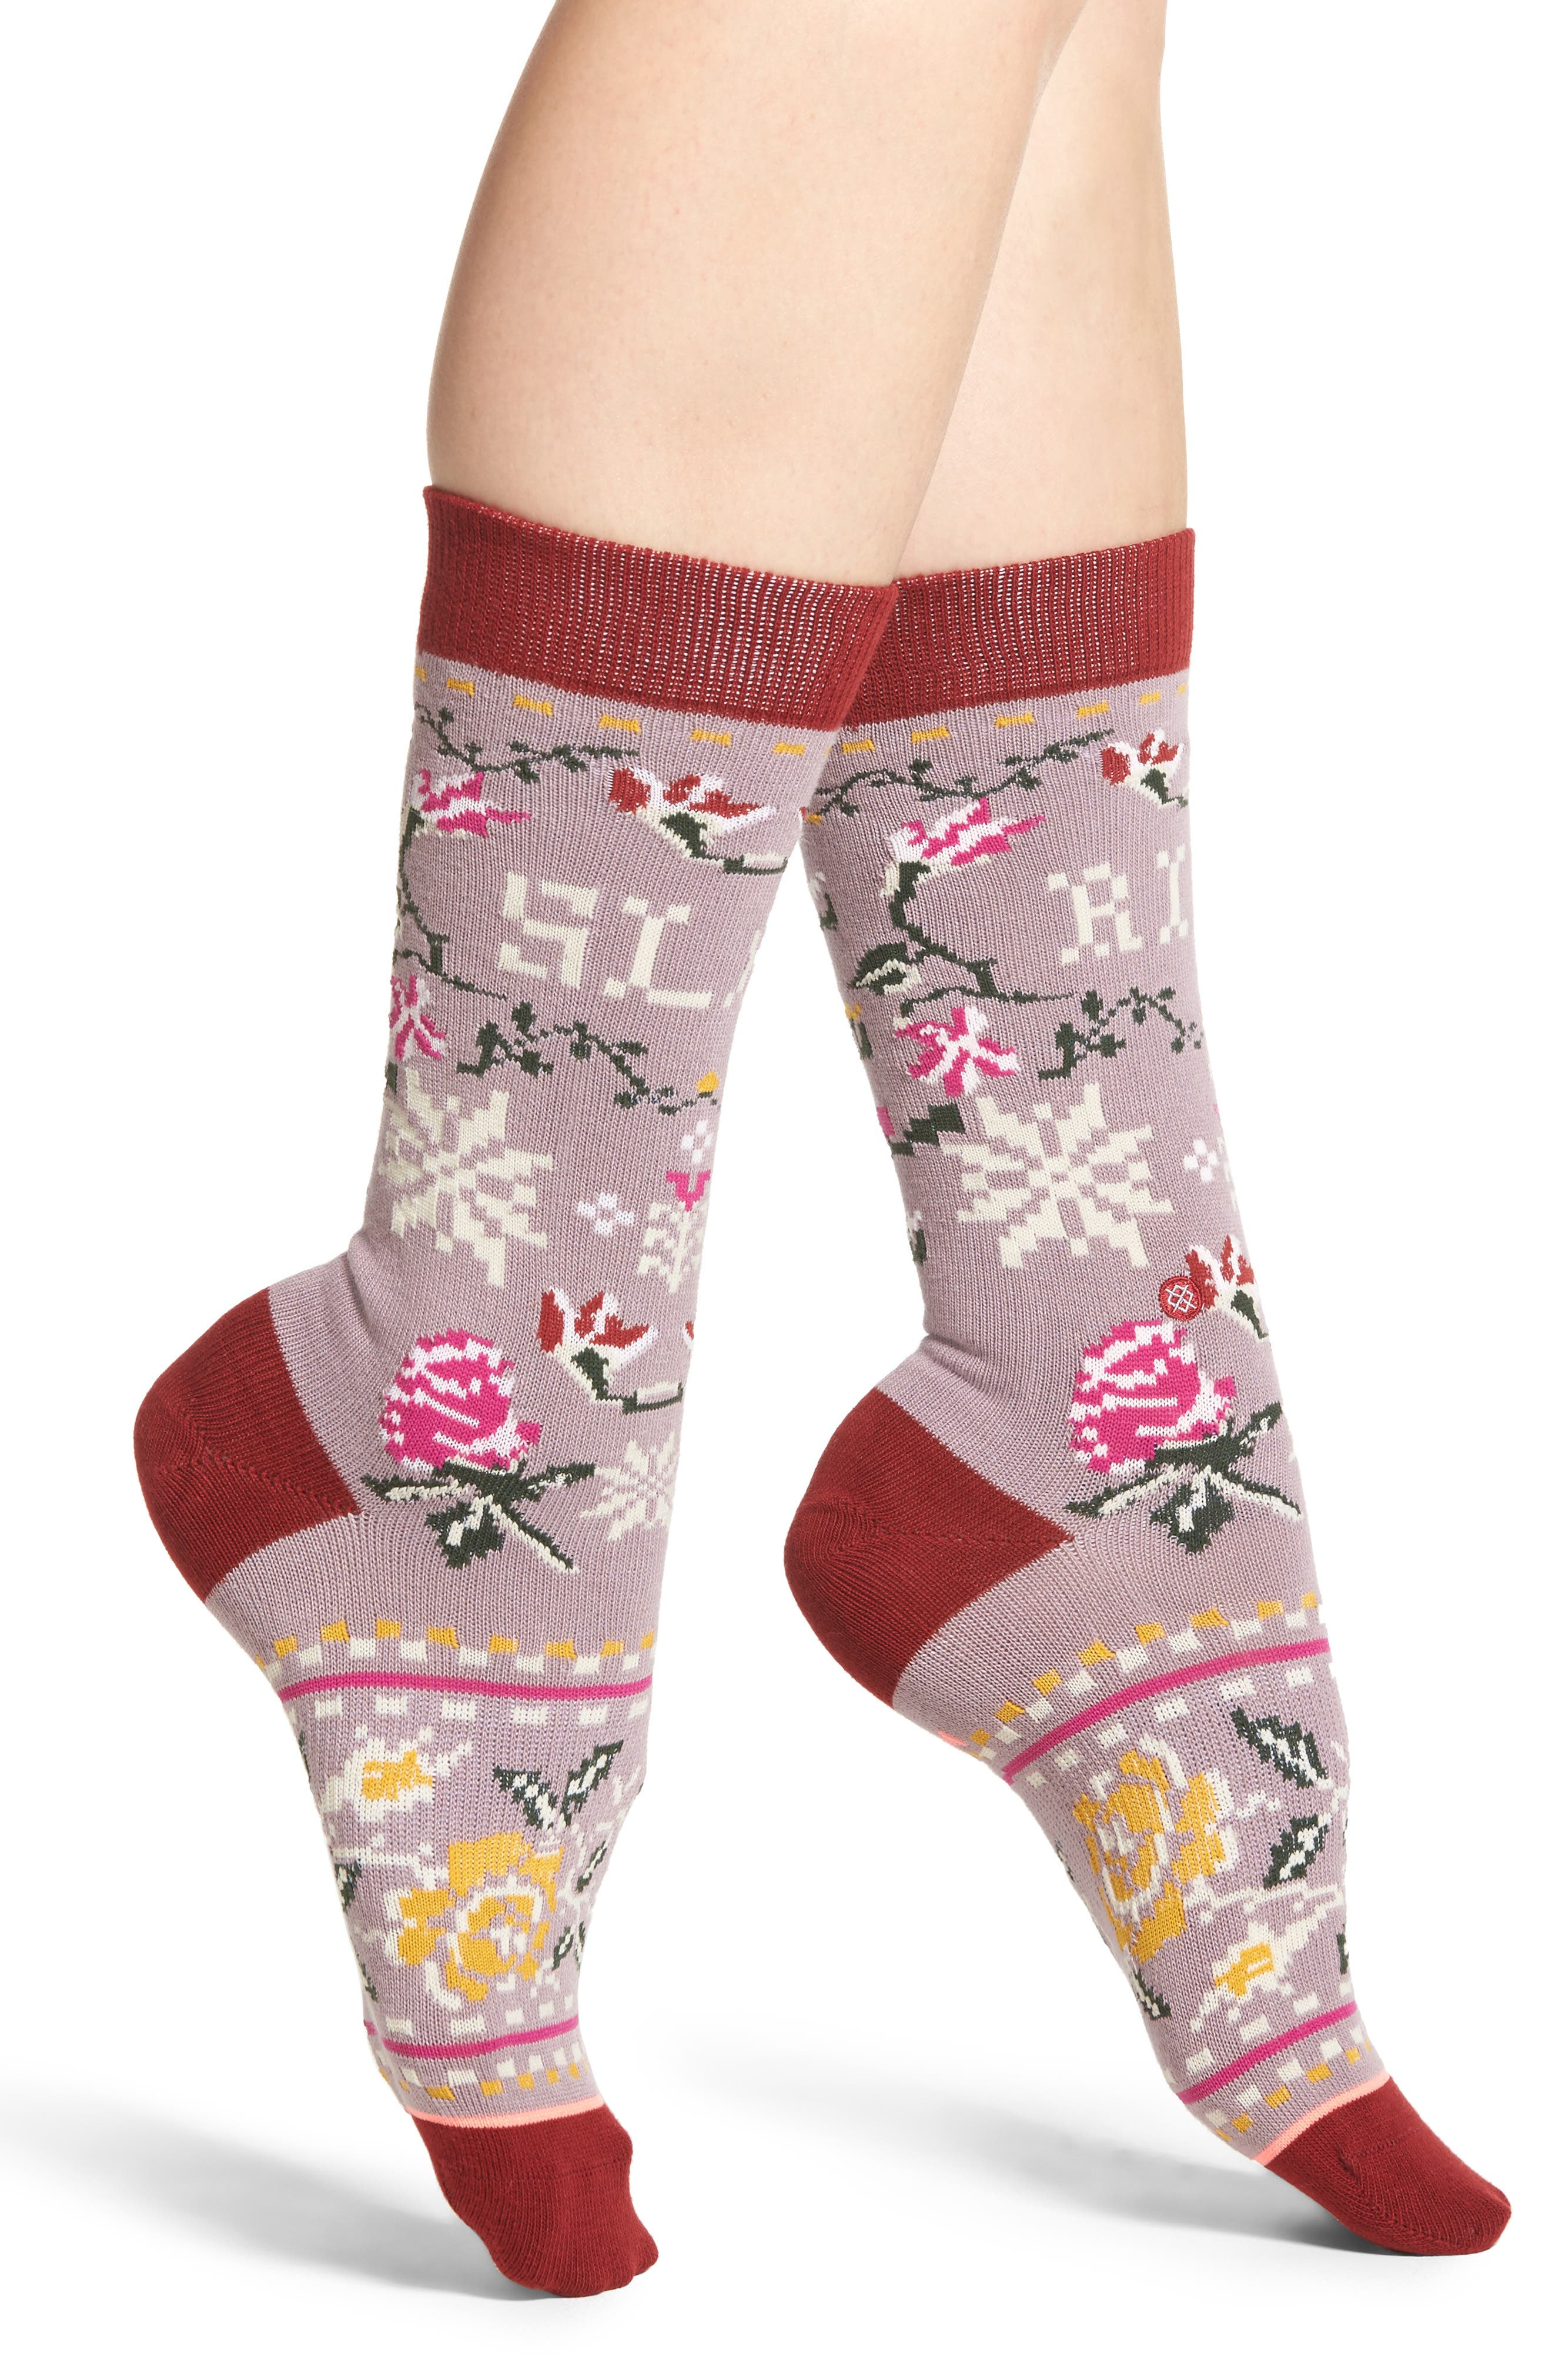 Alternate Image 1 Selected - Stance Slay Ride Tomboy Crew Socks